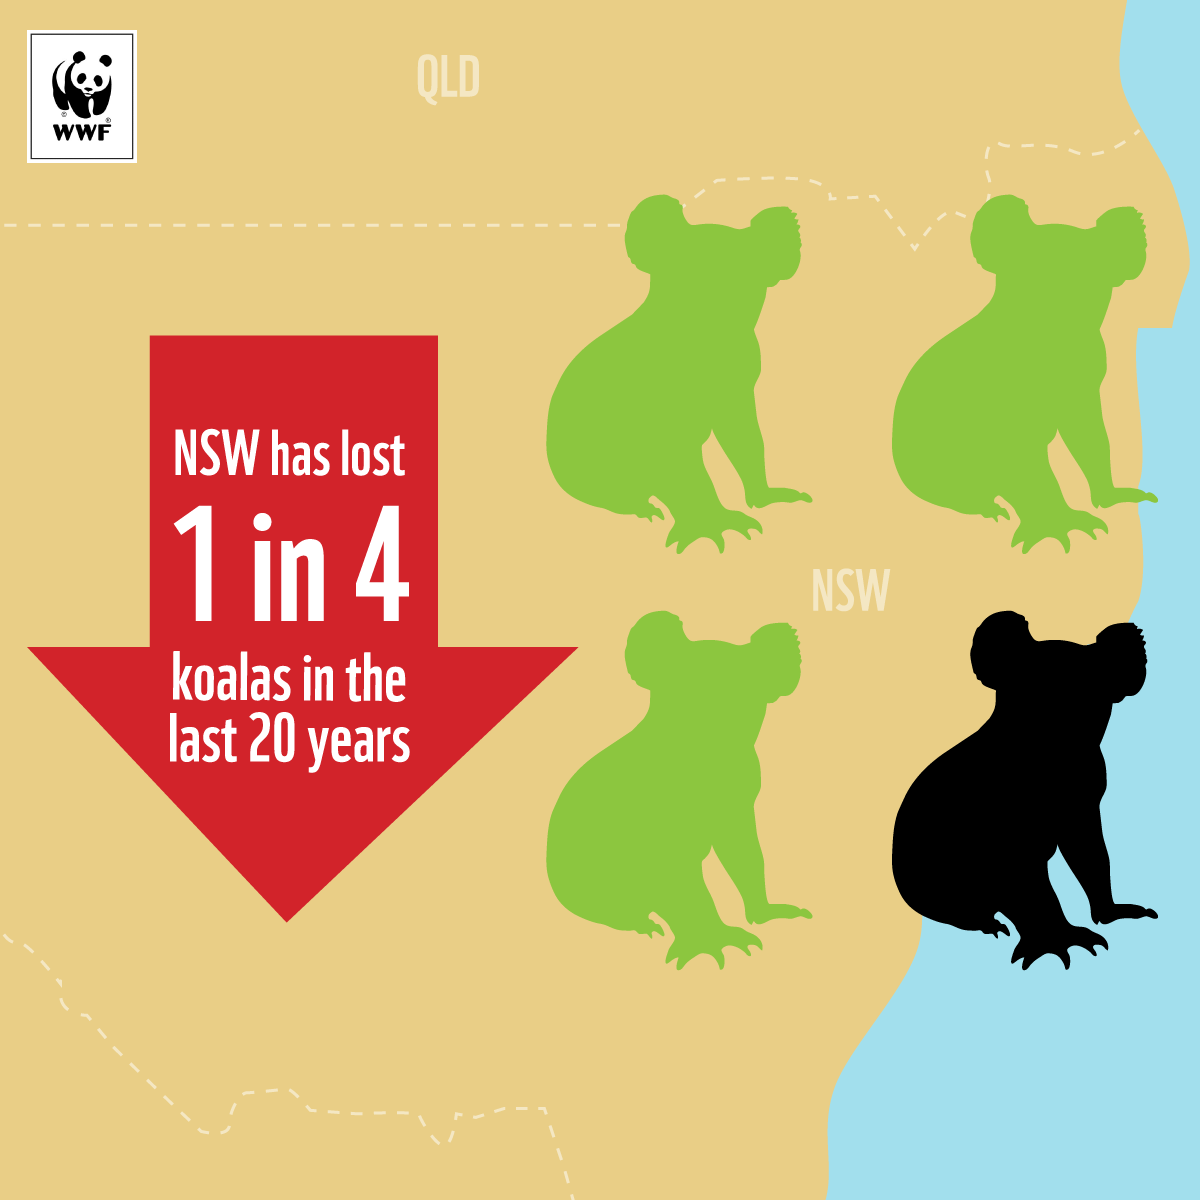 NSW has lost 1 in 4 koala in the last 20 years